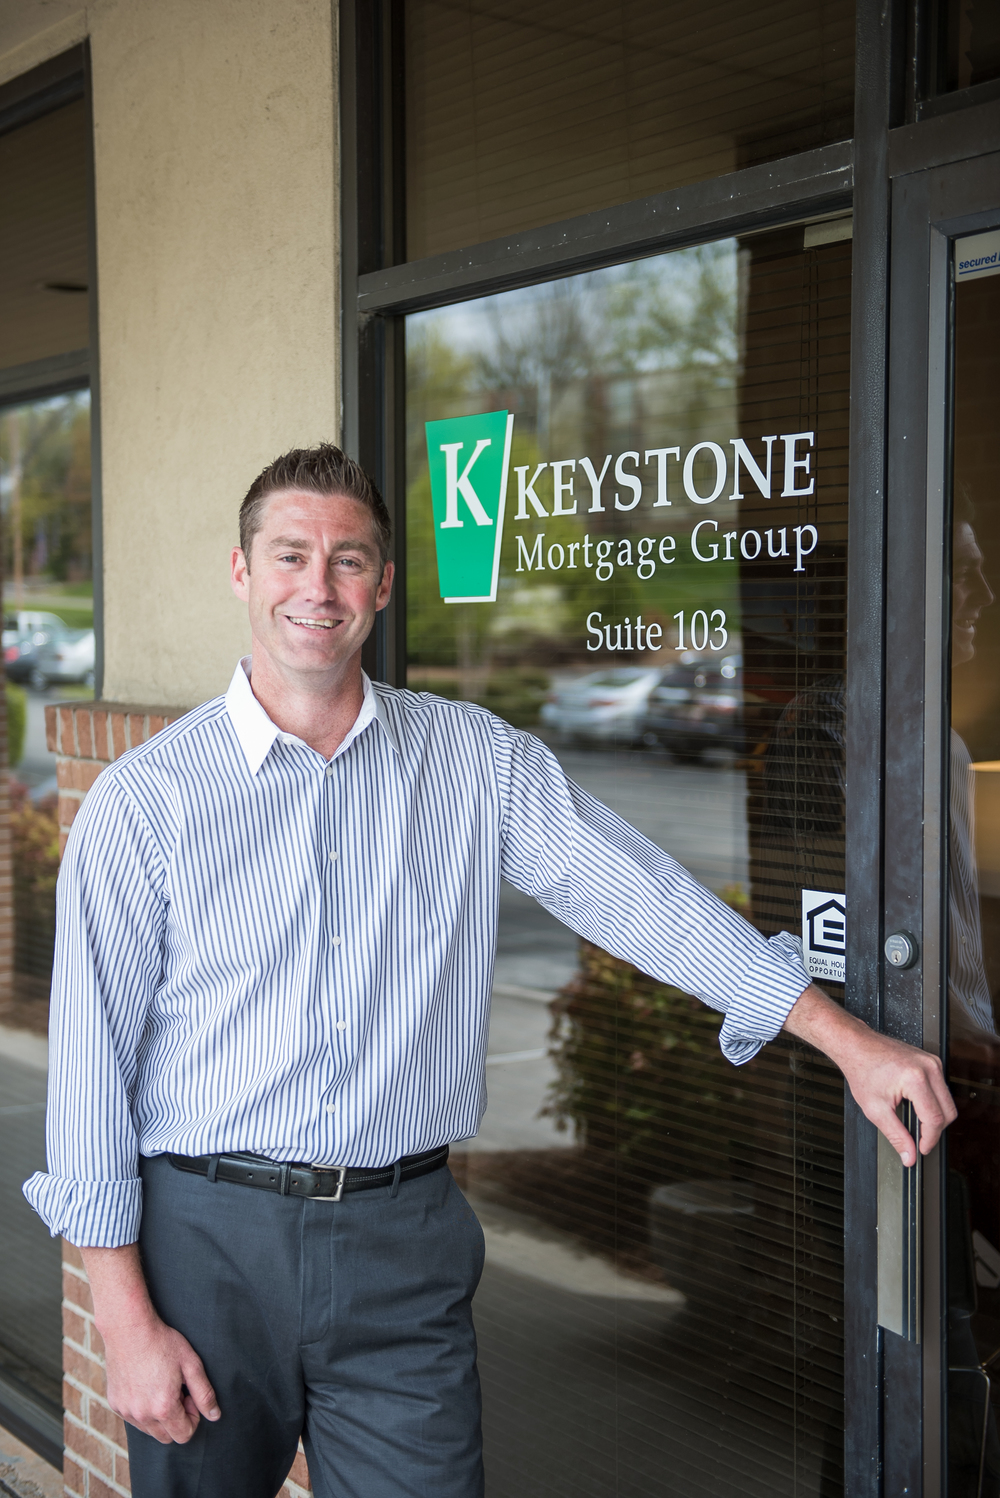 I Love Local Knoxville Keystone Mortgage-7549.jpg